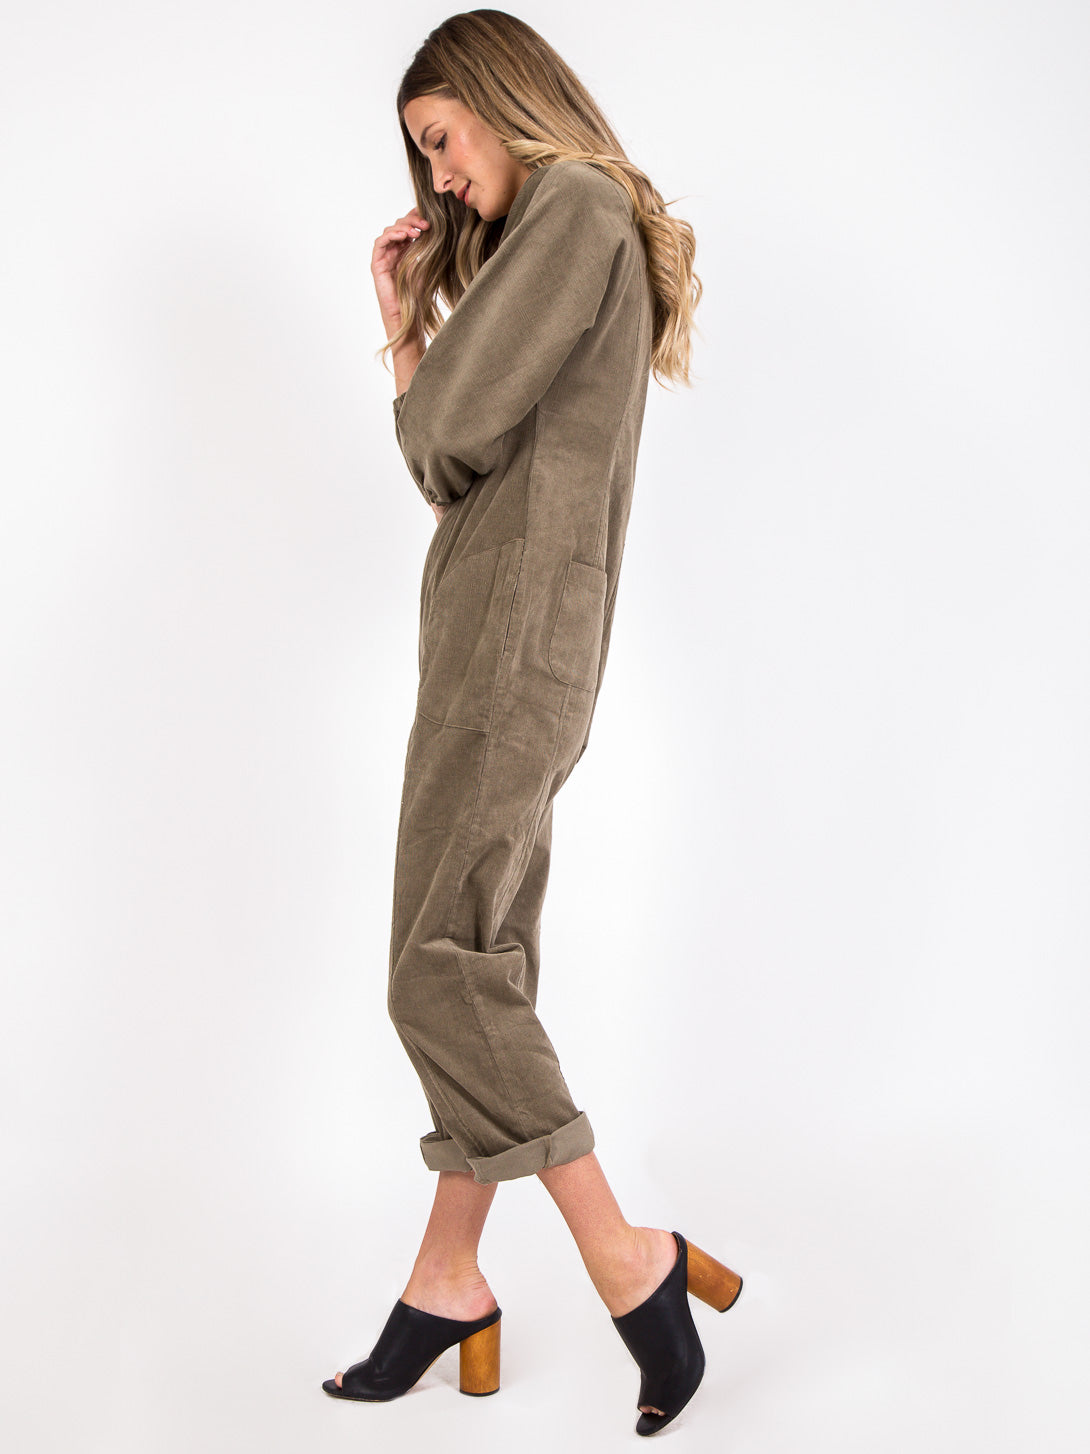 The Tilda Corduroy Jumpsuit